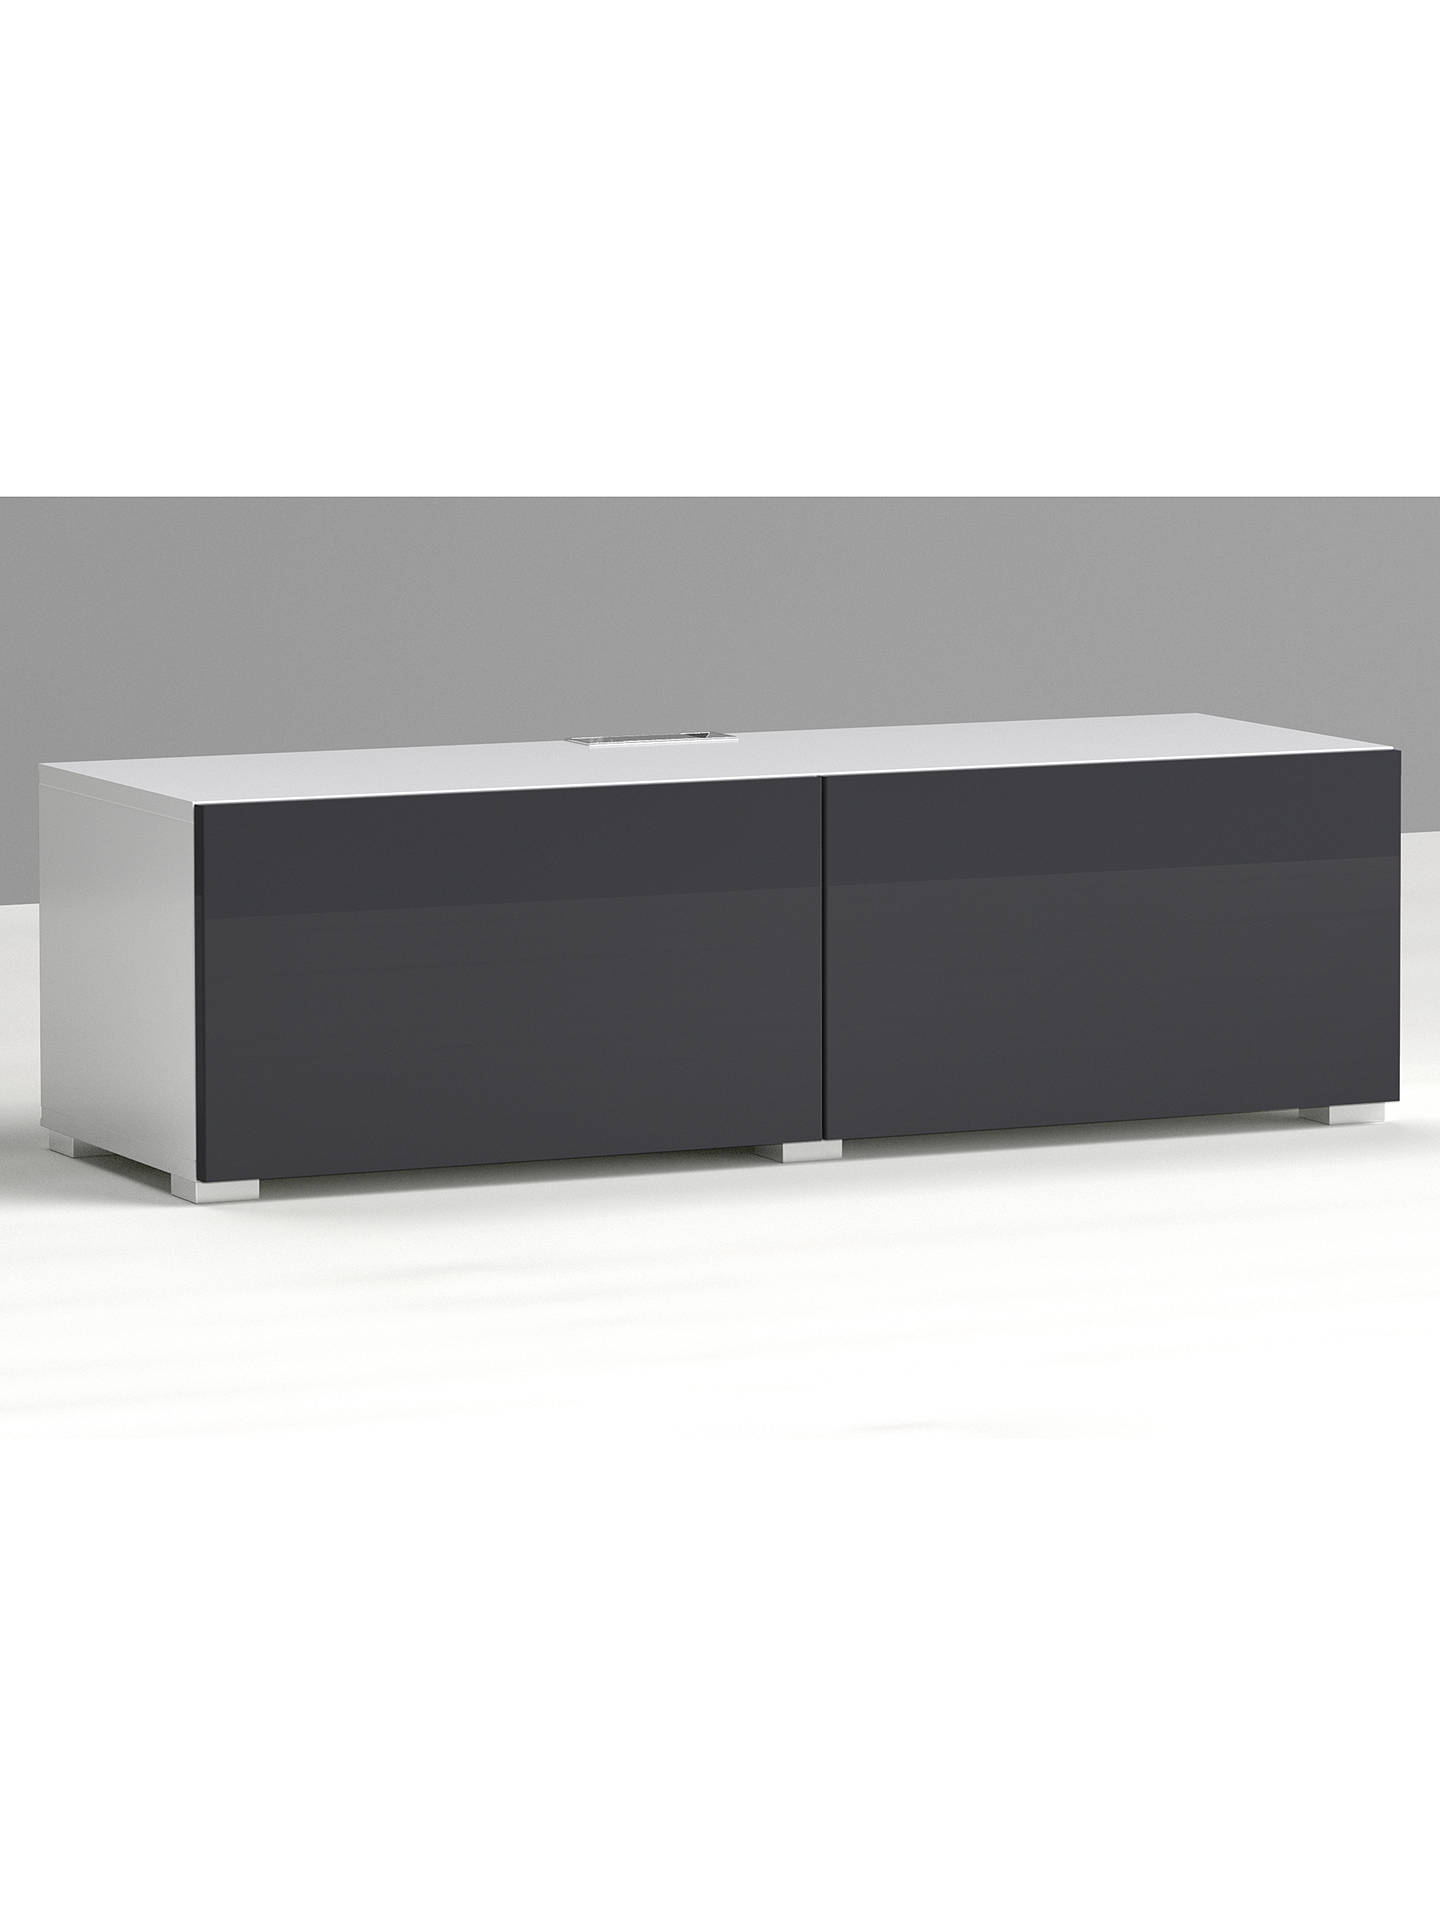 BuyHouse by John Lewis Mix it Media Unit - White frame / Gloss steel doors Online at johnlewis.com